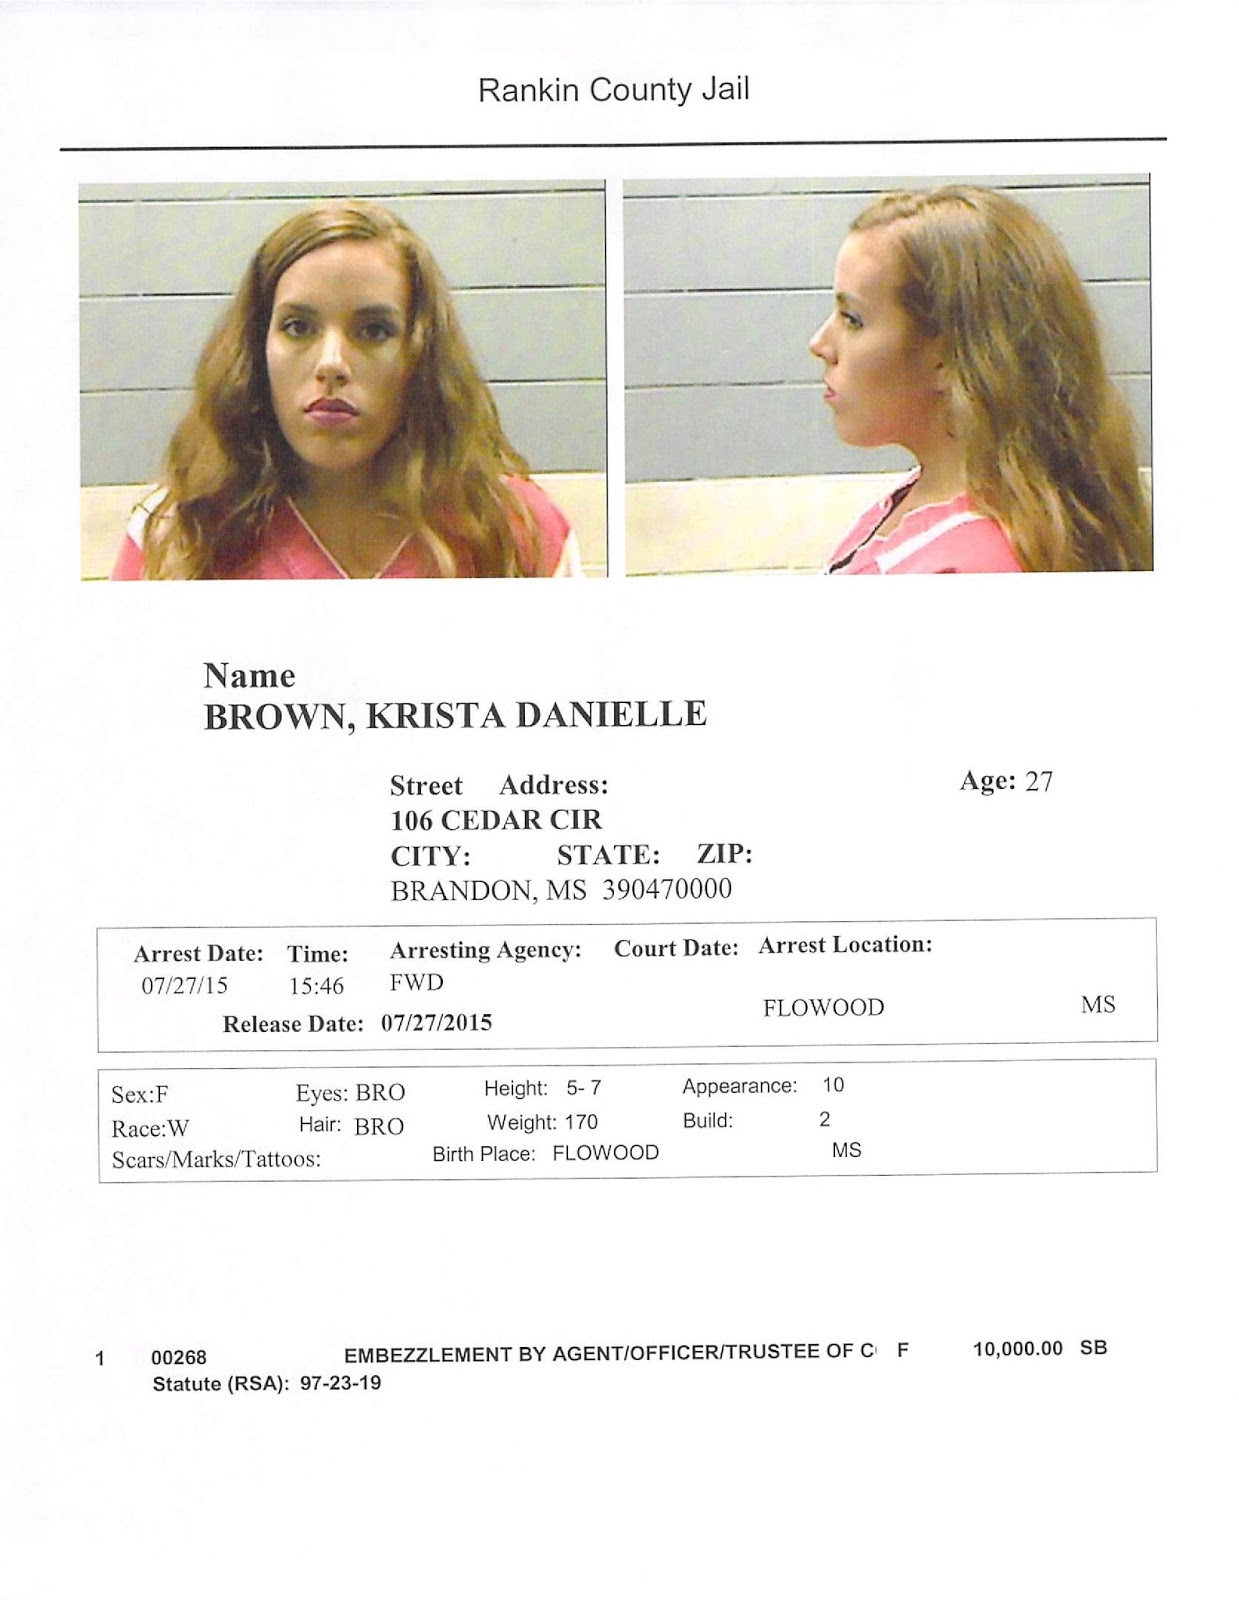 Mississippi rankin county star - Jackson Jambalaya Former Material Girls Manager Arrested In Flowood For Embezzlement